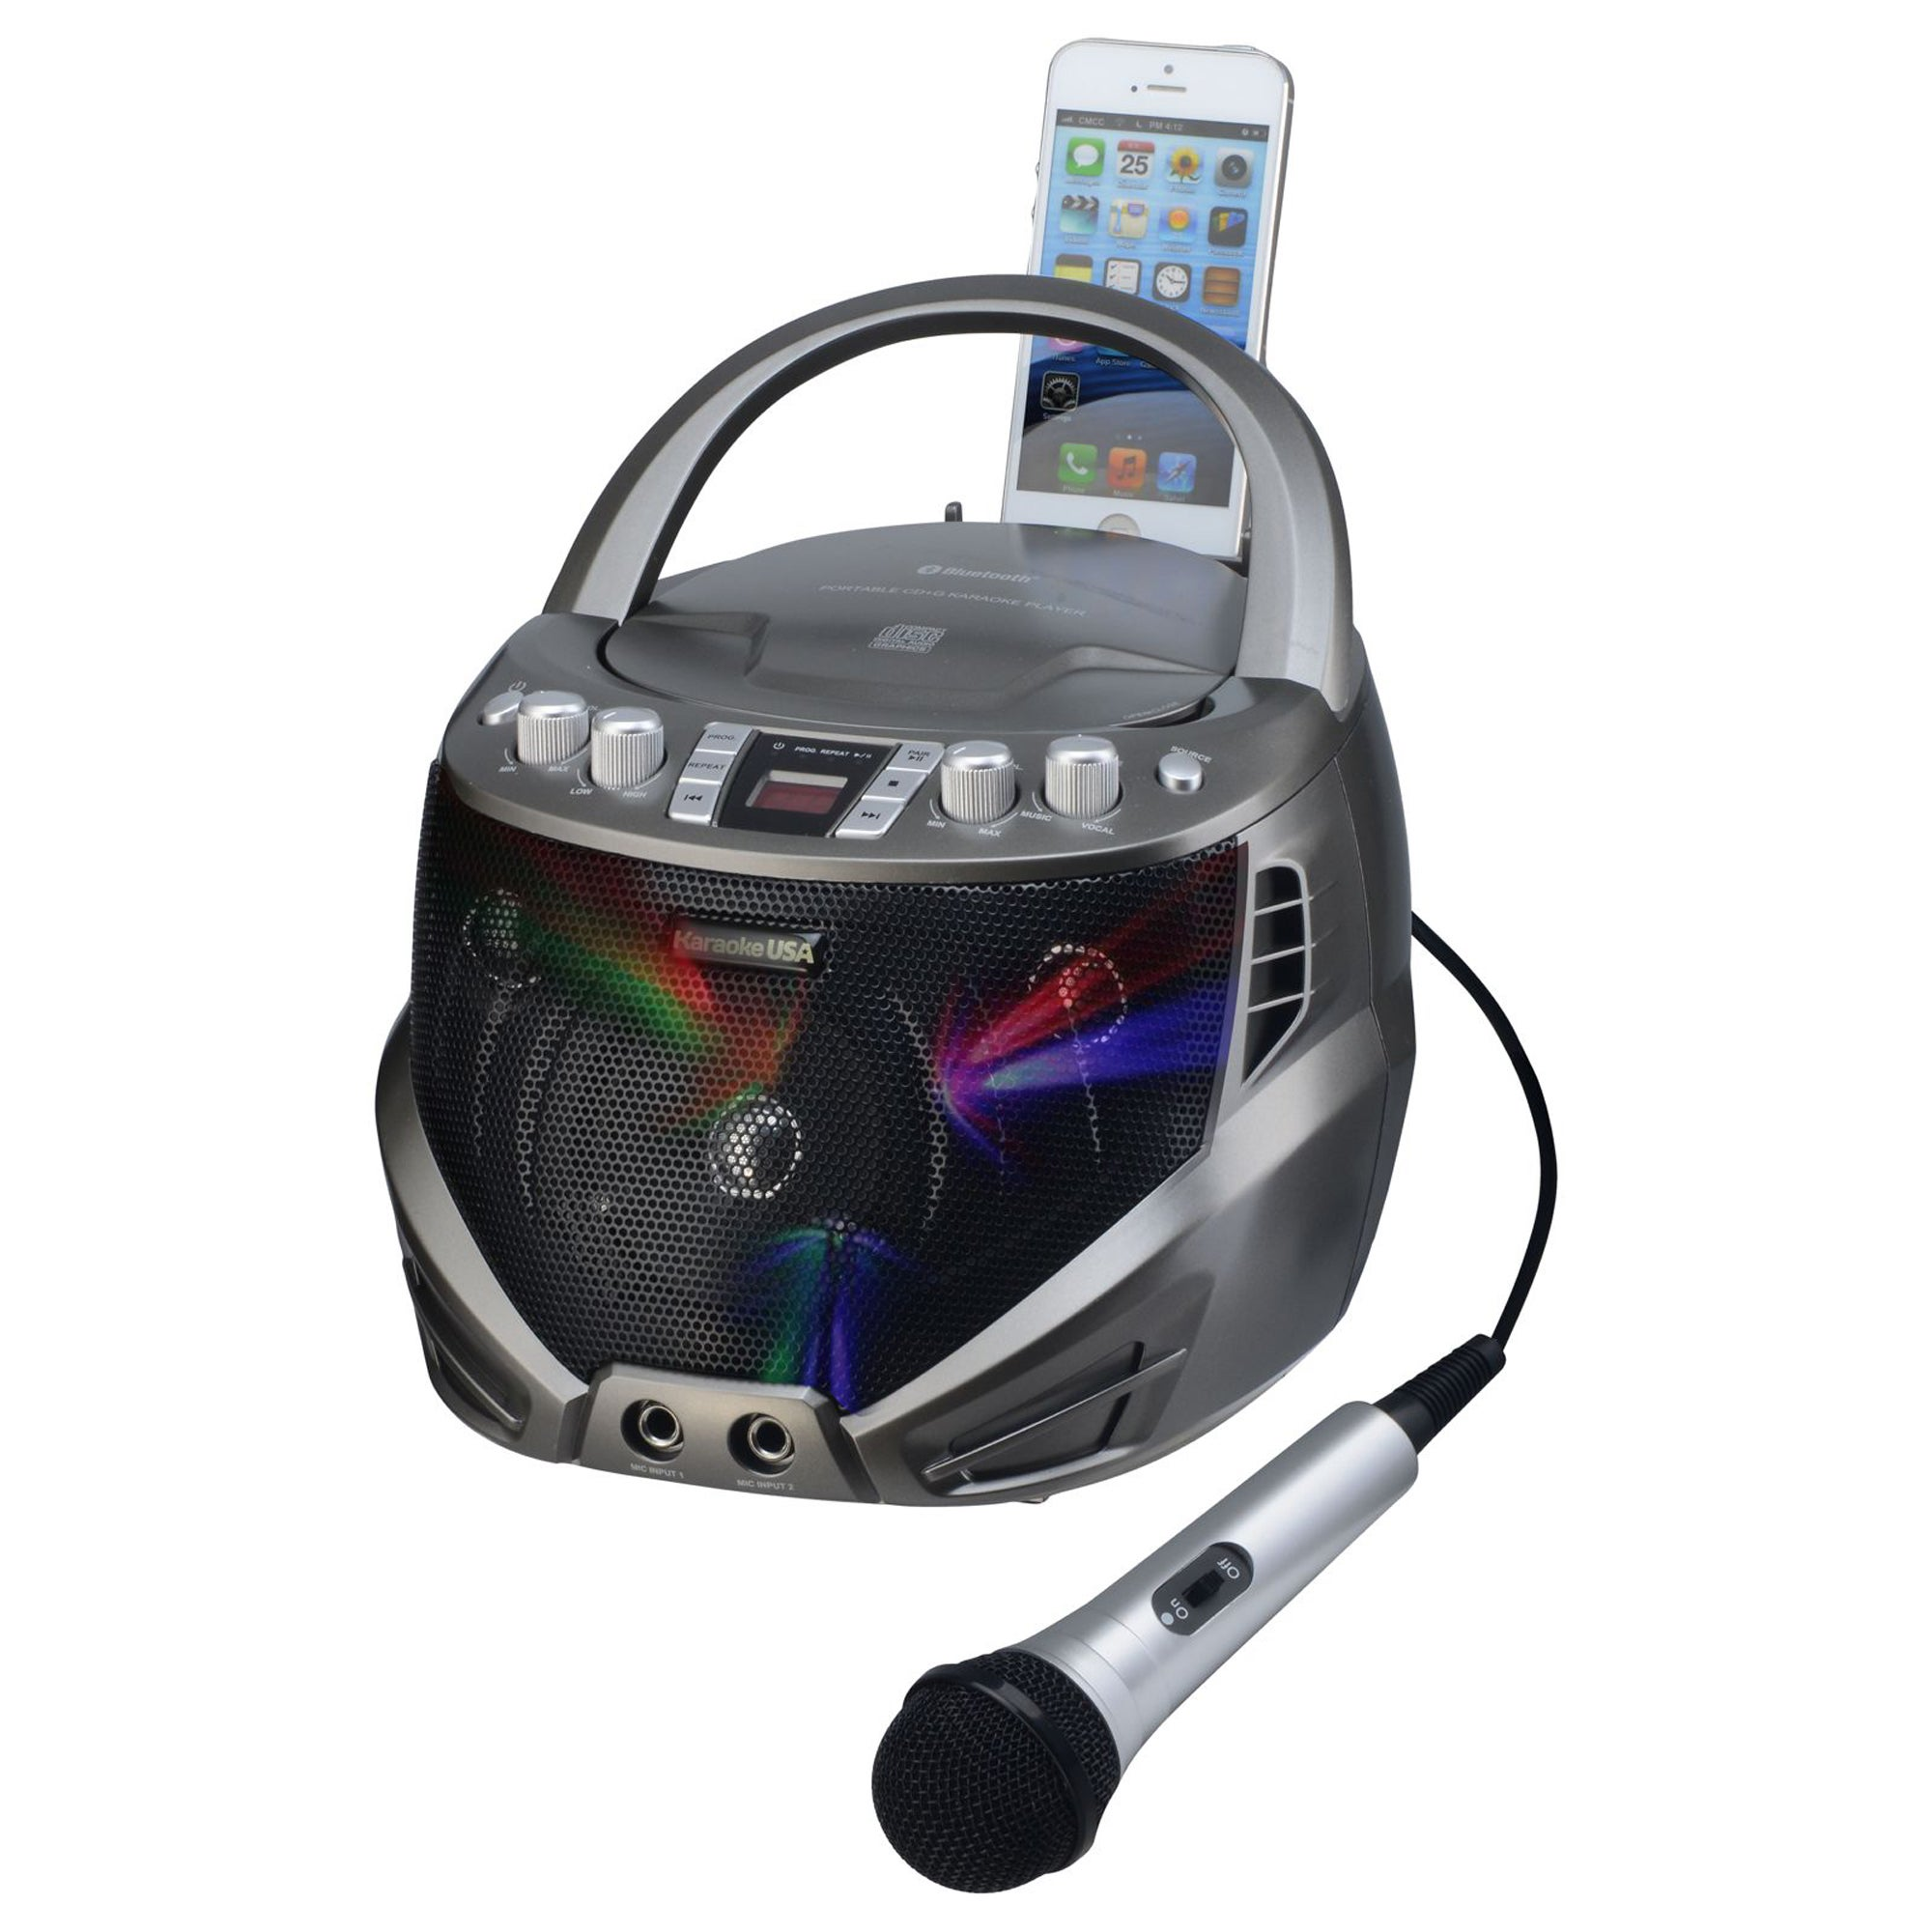 DOK GQ263 Portable CDG Karaoke Player with Flashing LED Lights